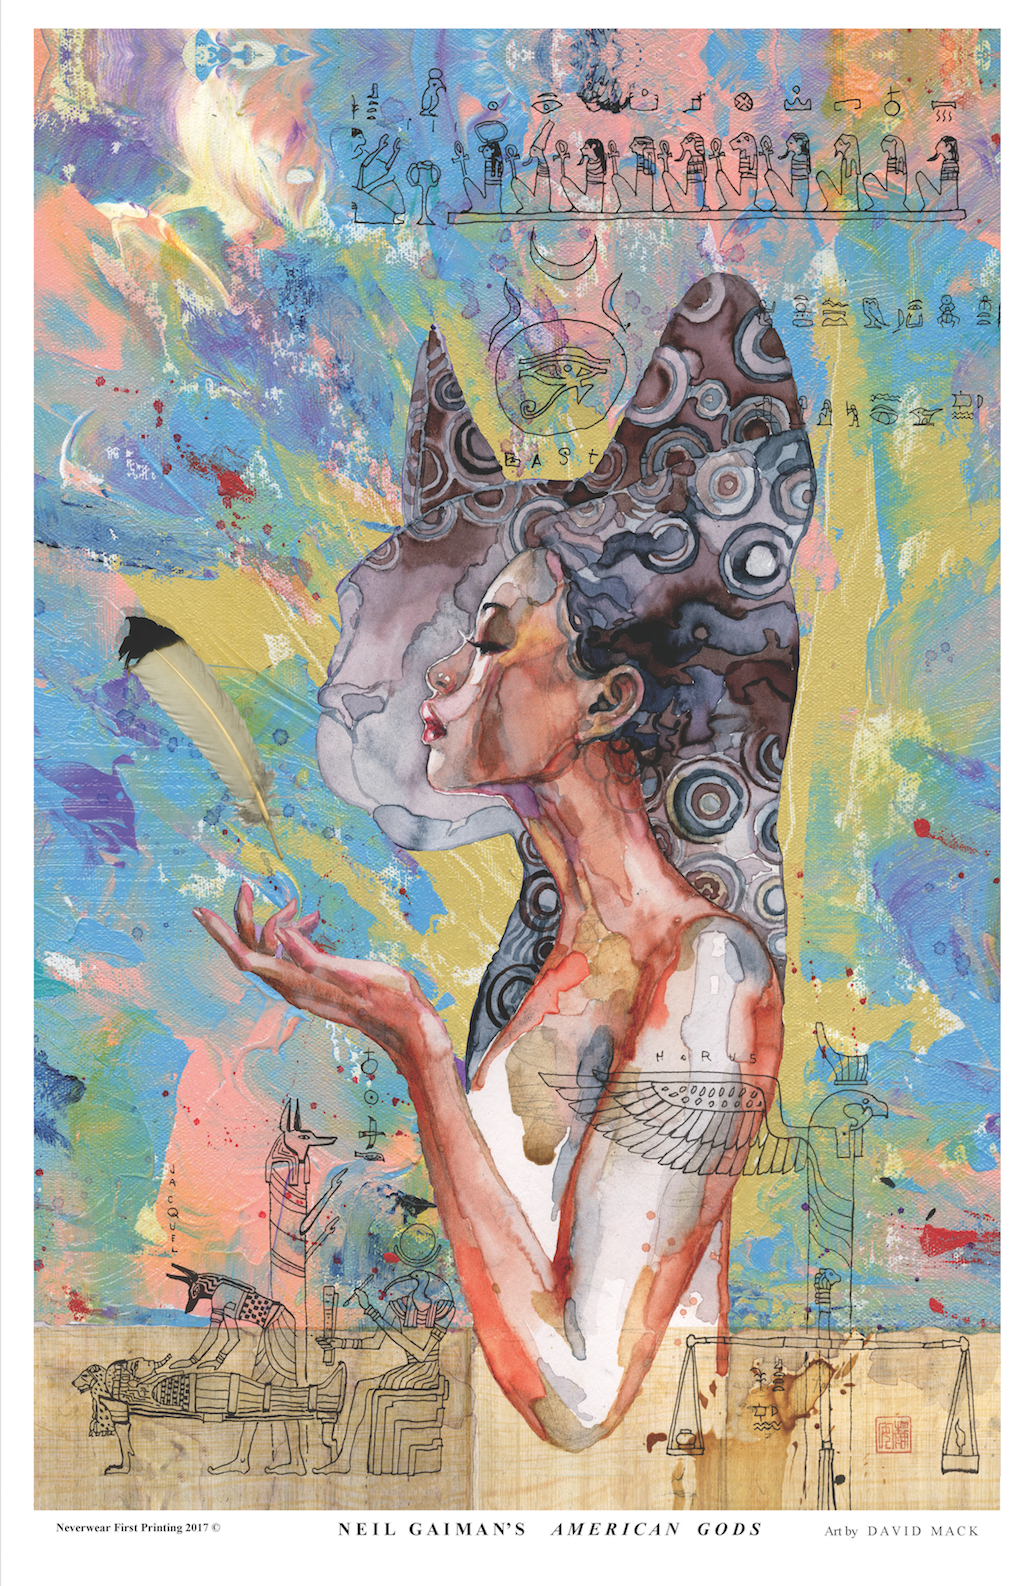 BRAND NEW PRINT! David Mack illustrates American Gods